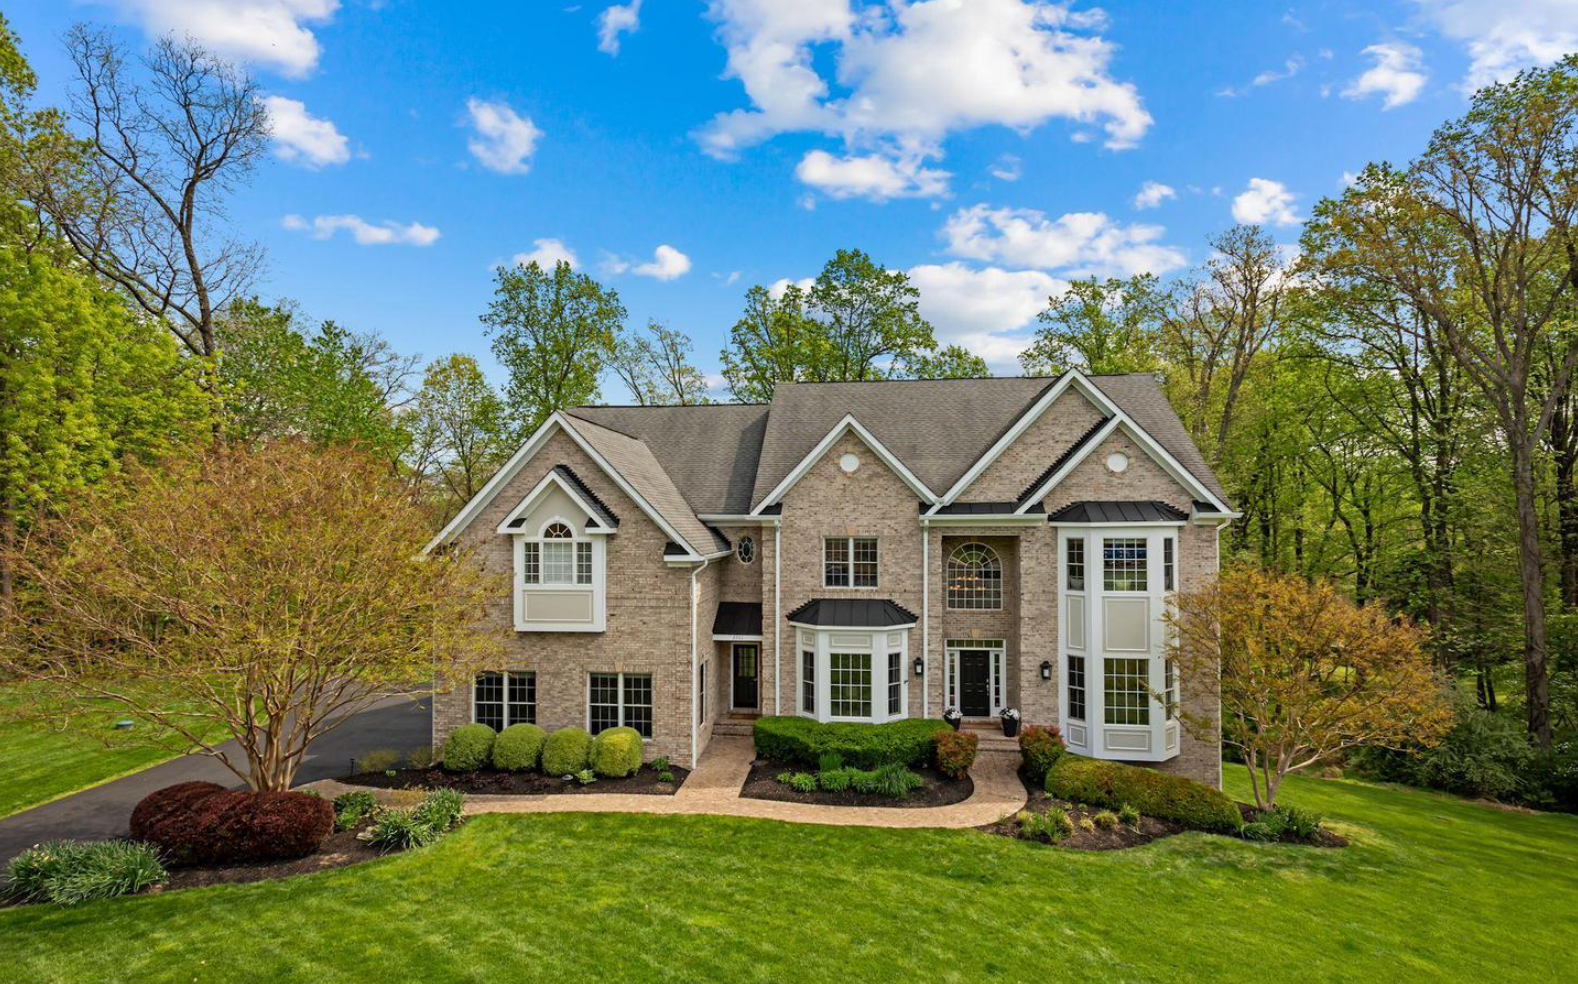 Top Sales for June 2021: Over $10M Sold!